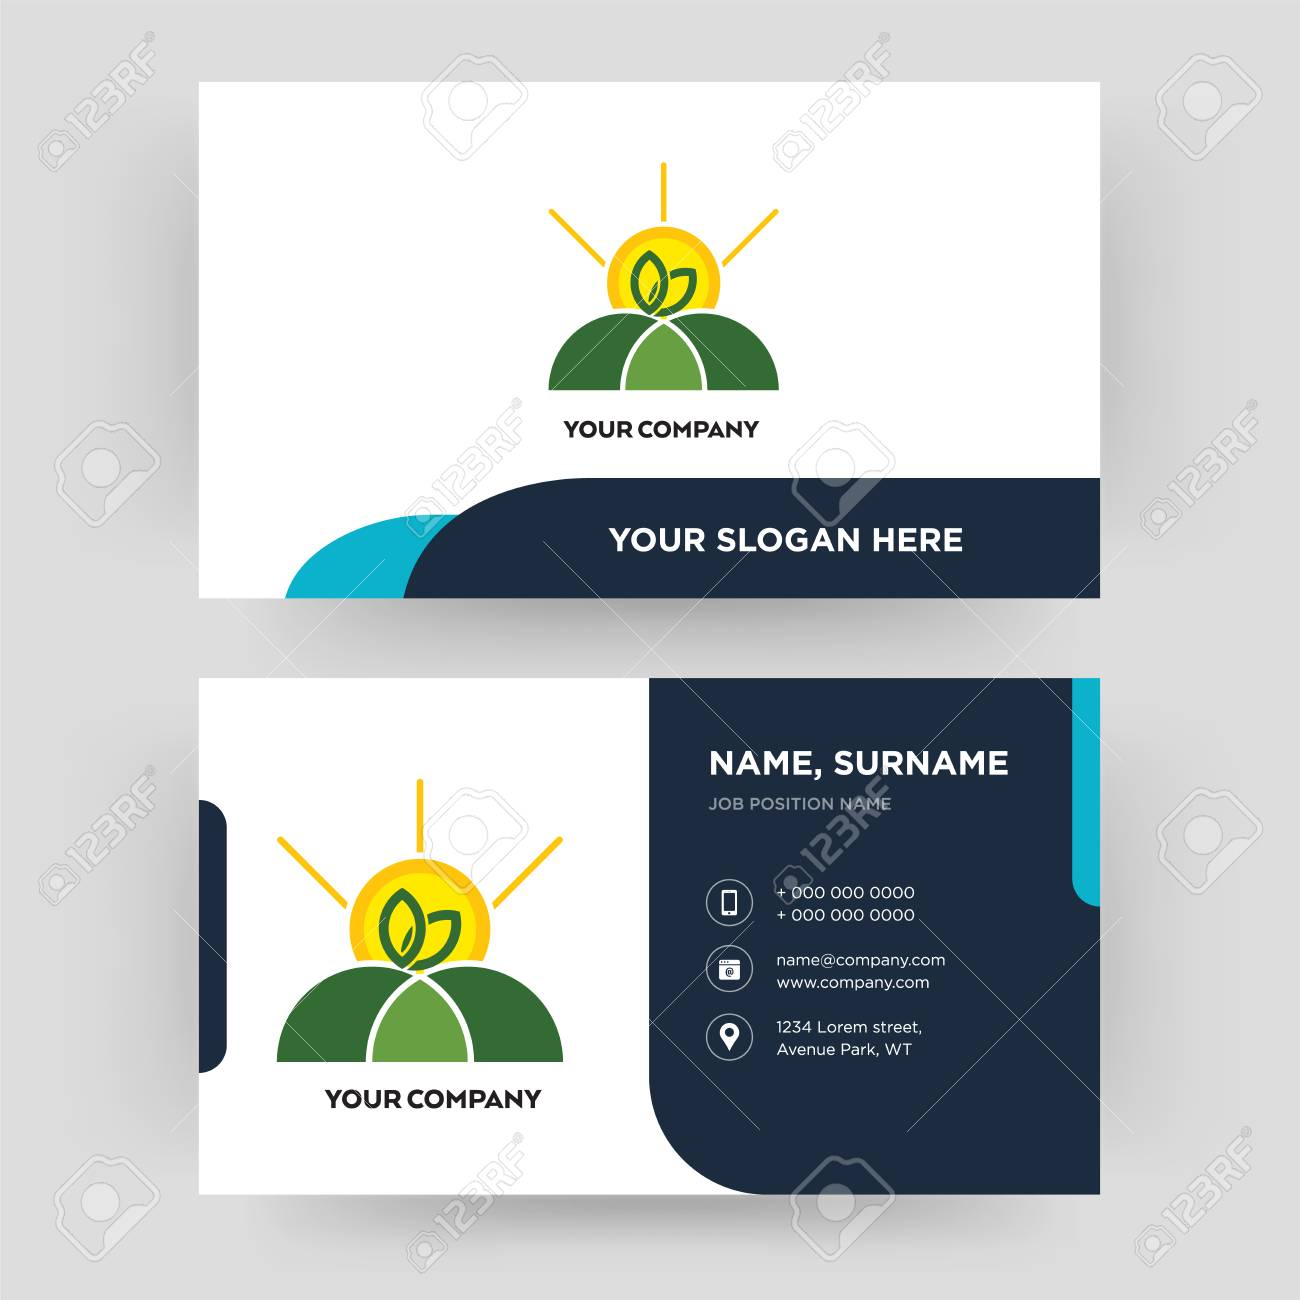 agro business card design template visiting for your company